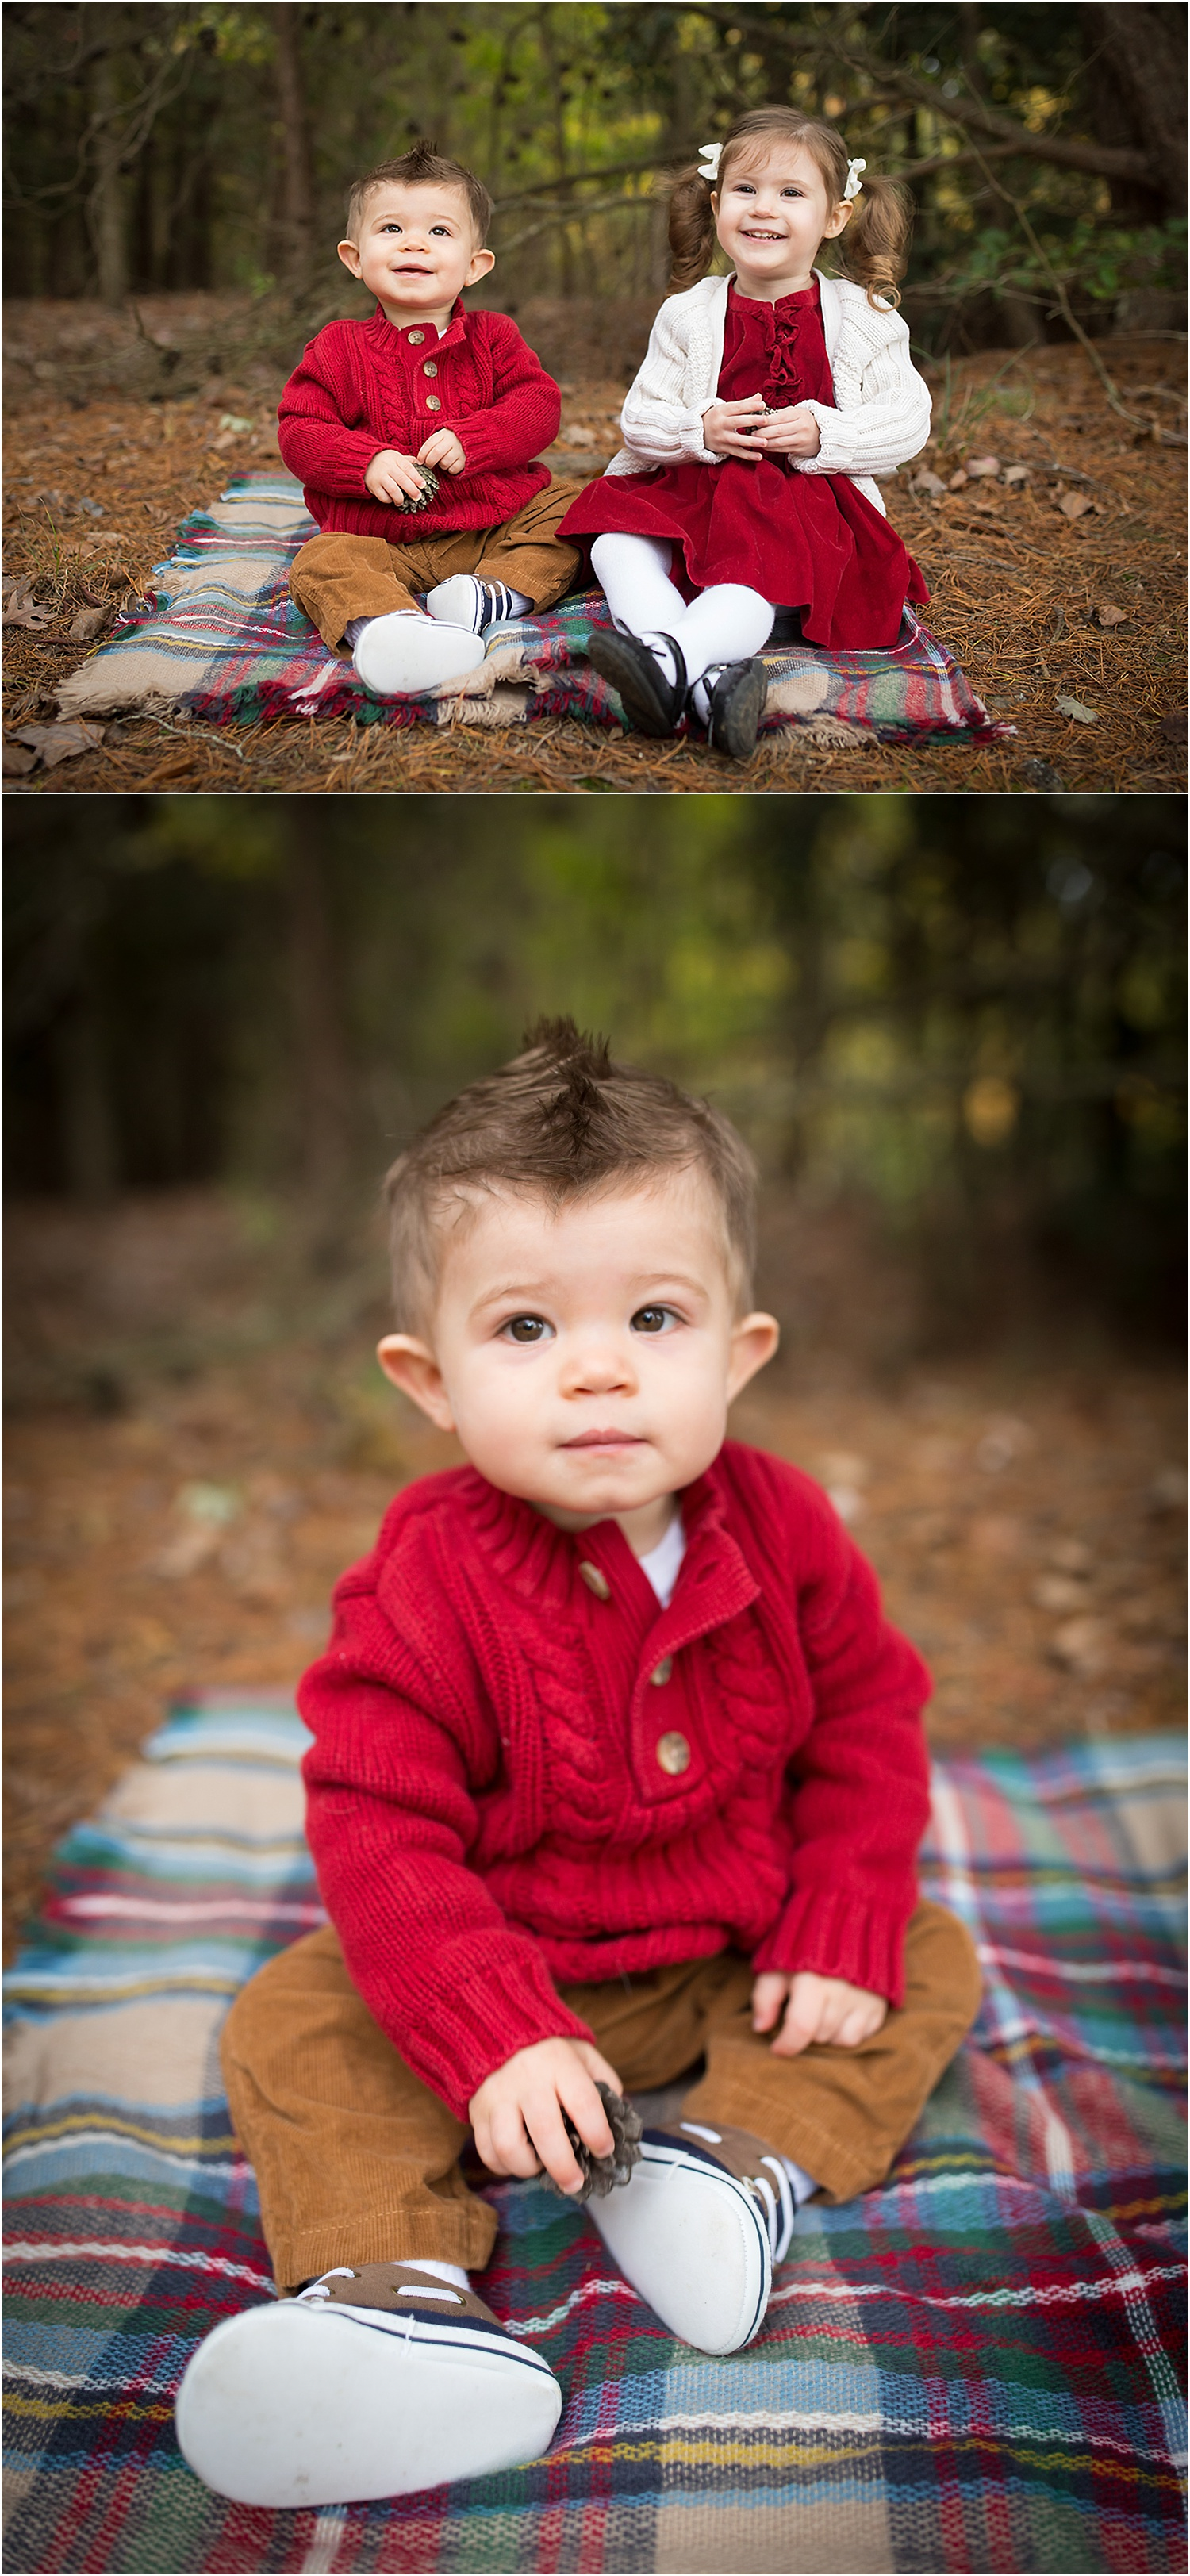 cooper james graves maryn graves productions SOMD Southern Maryland Photographer DC Photographer NOVA Photographer